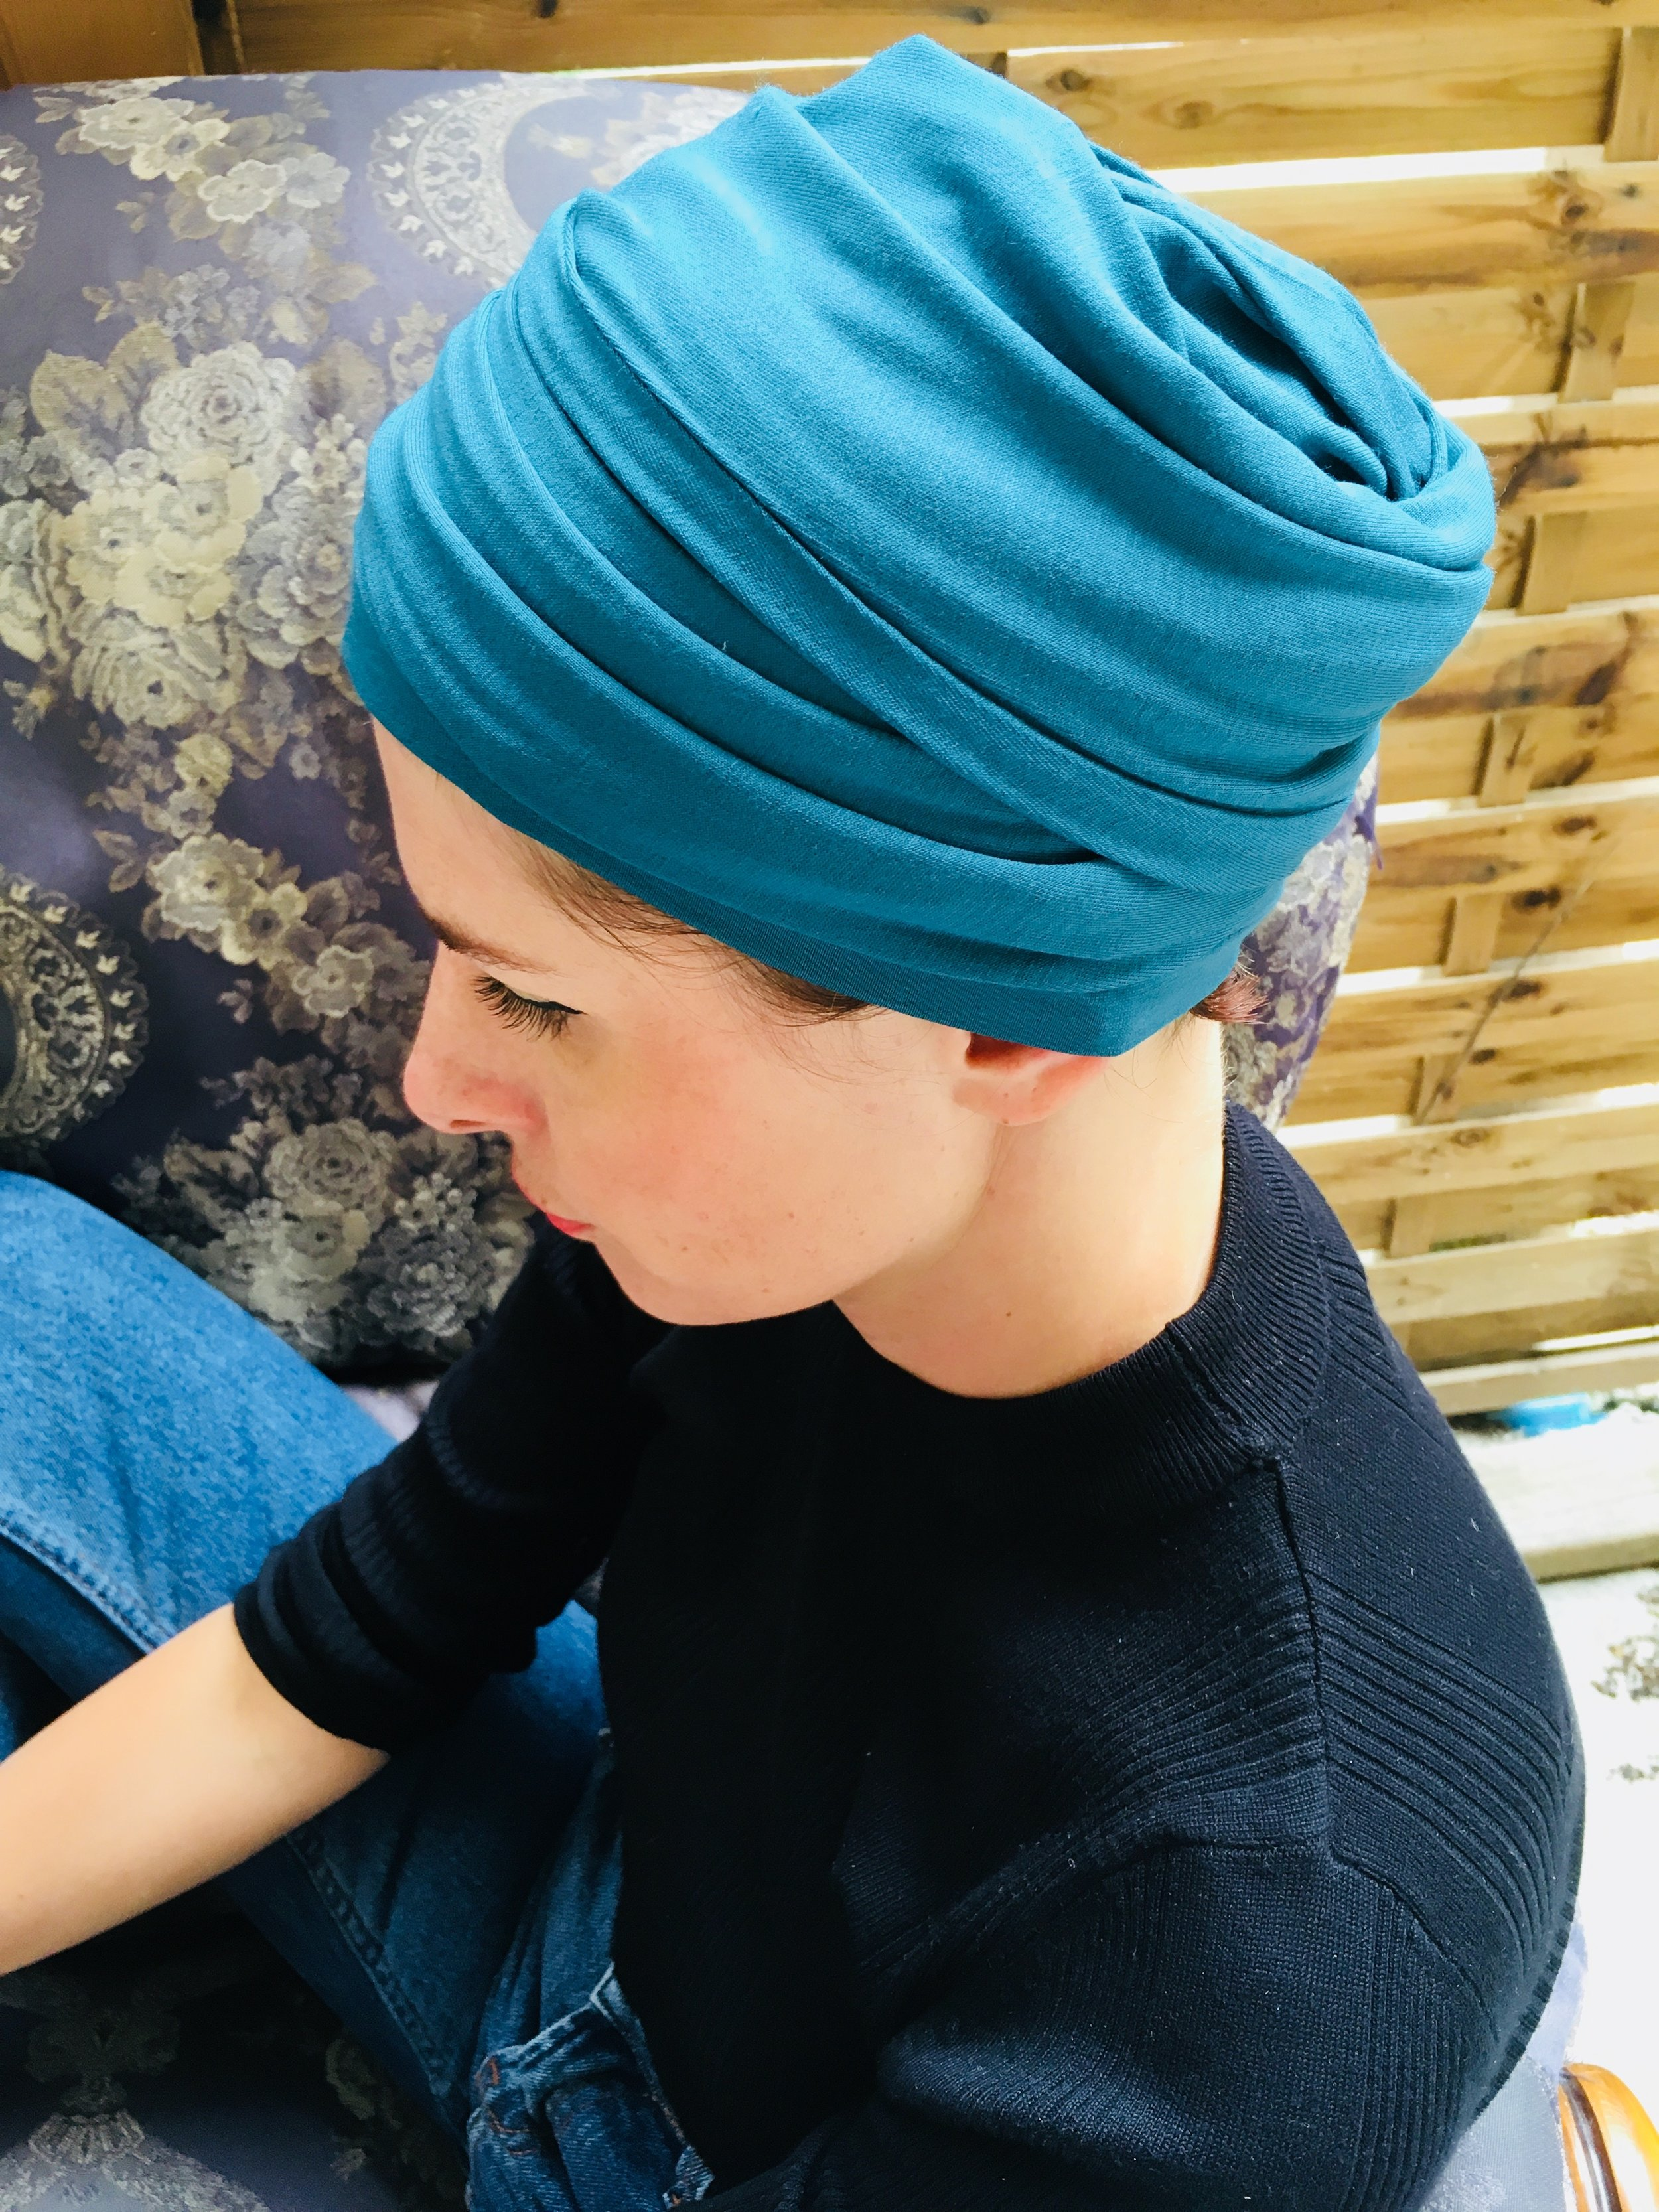 turban-chimiotherapie-confortable-foudre-emeraude.jpg